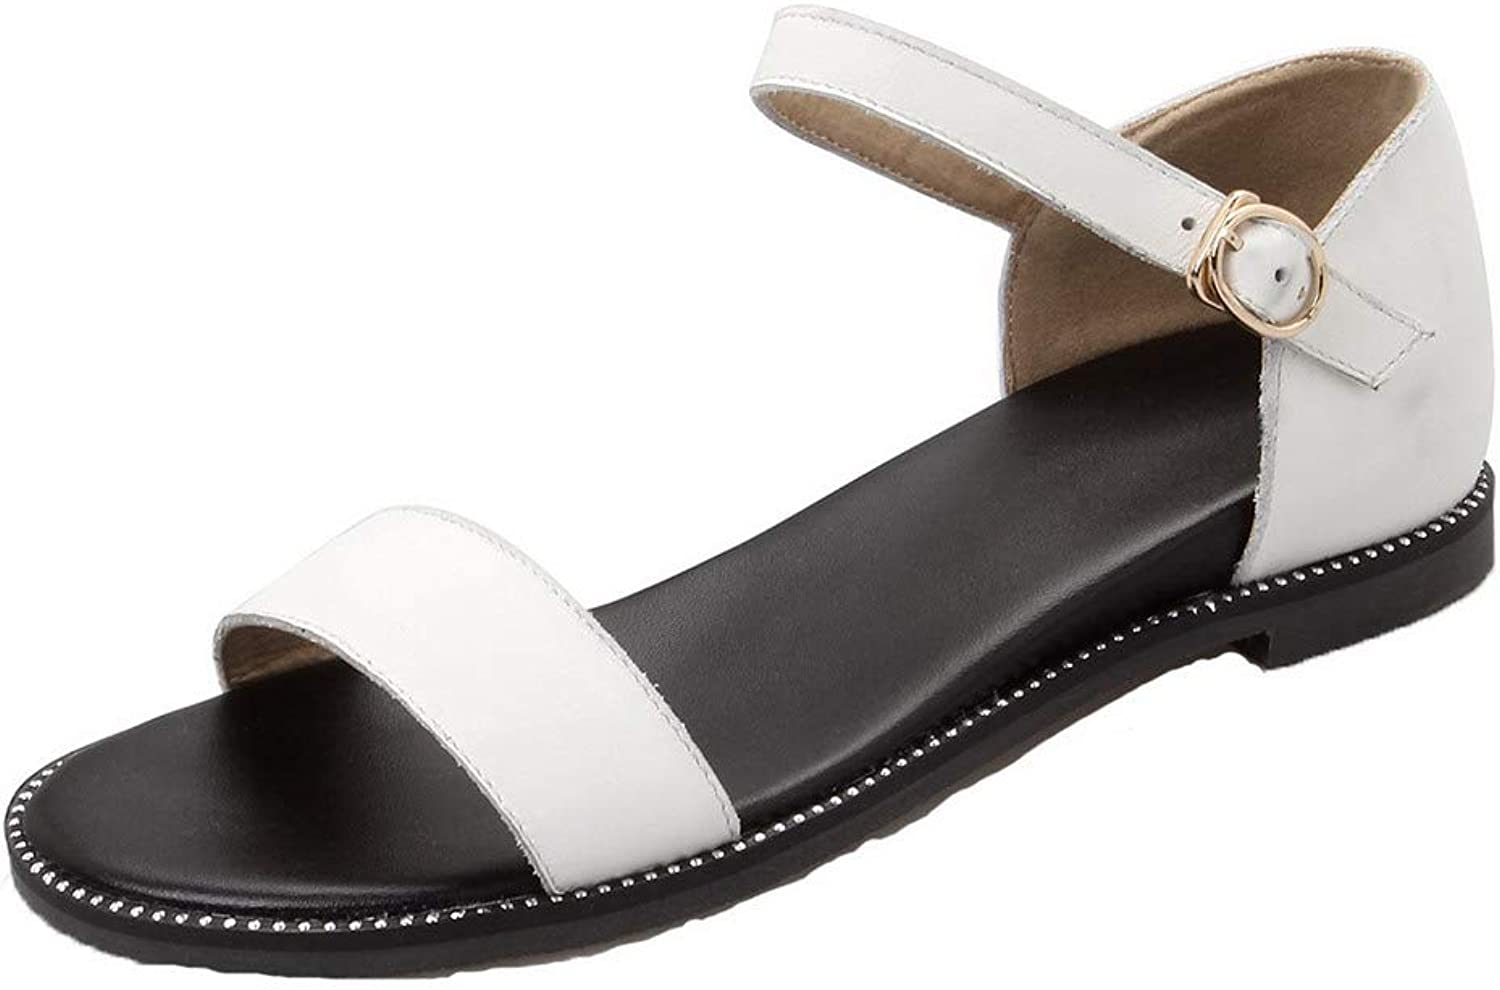 WeiPoot Women's Buckle Frosted Open-Toe Low-Heels Solid Sandals